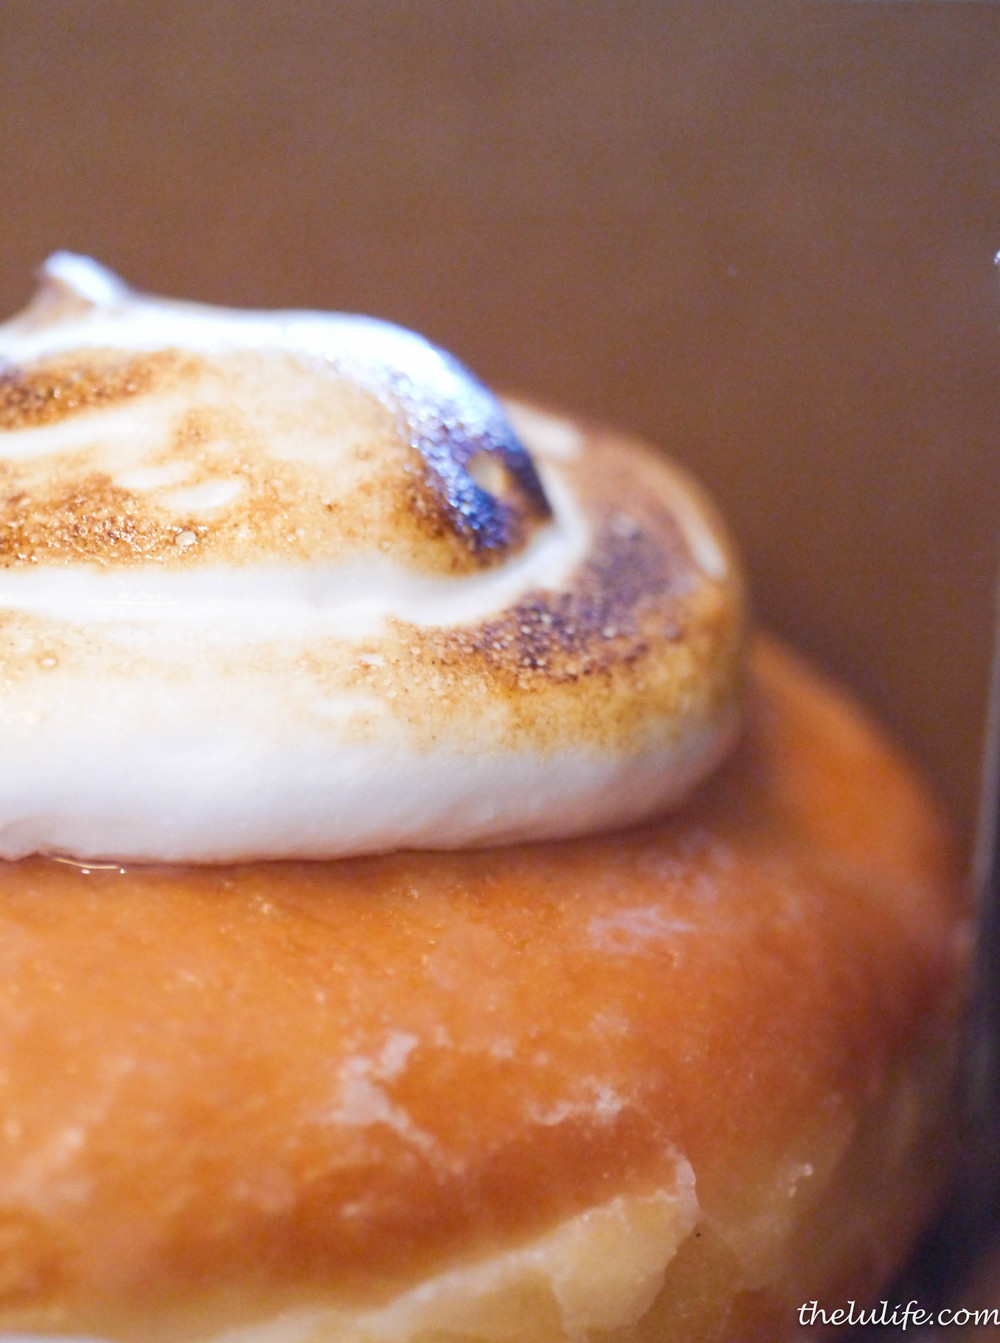 Figure 6. Lemon verbana meringue doughnut